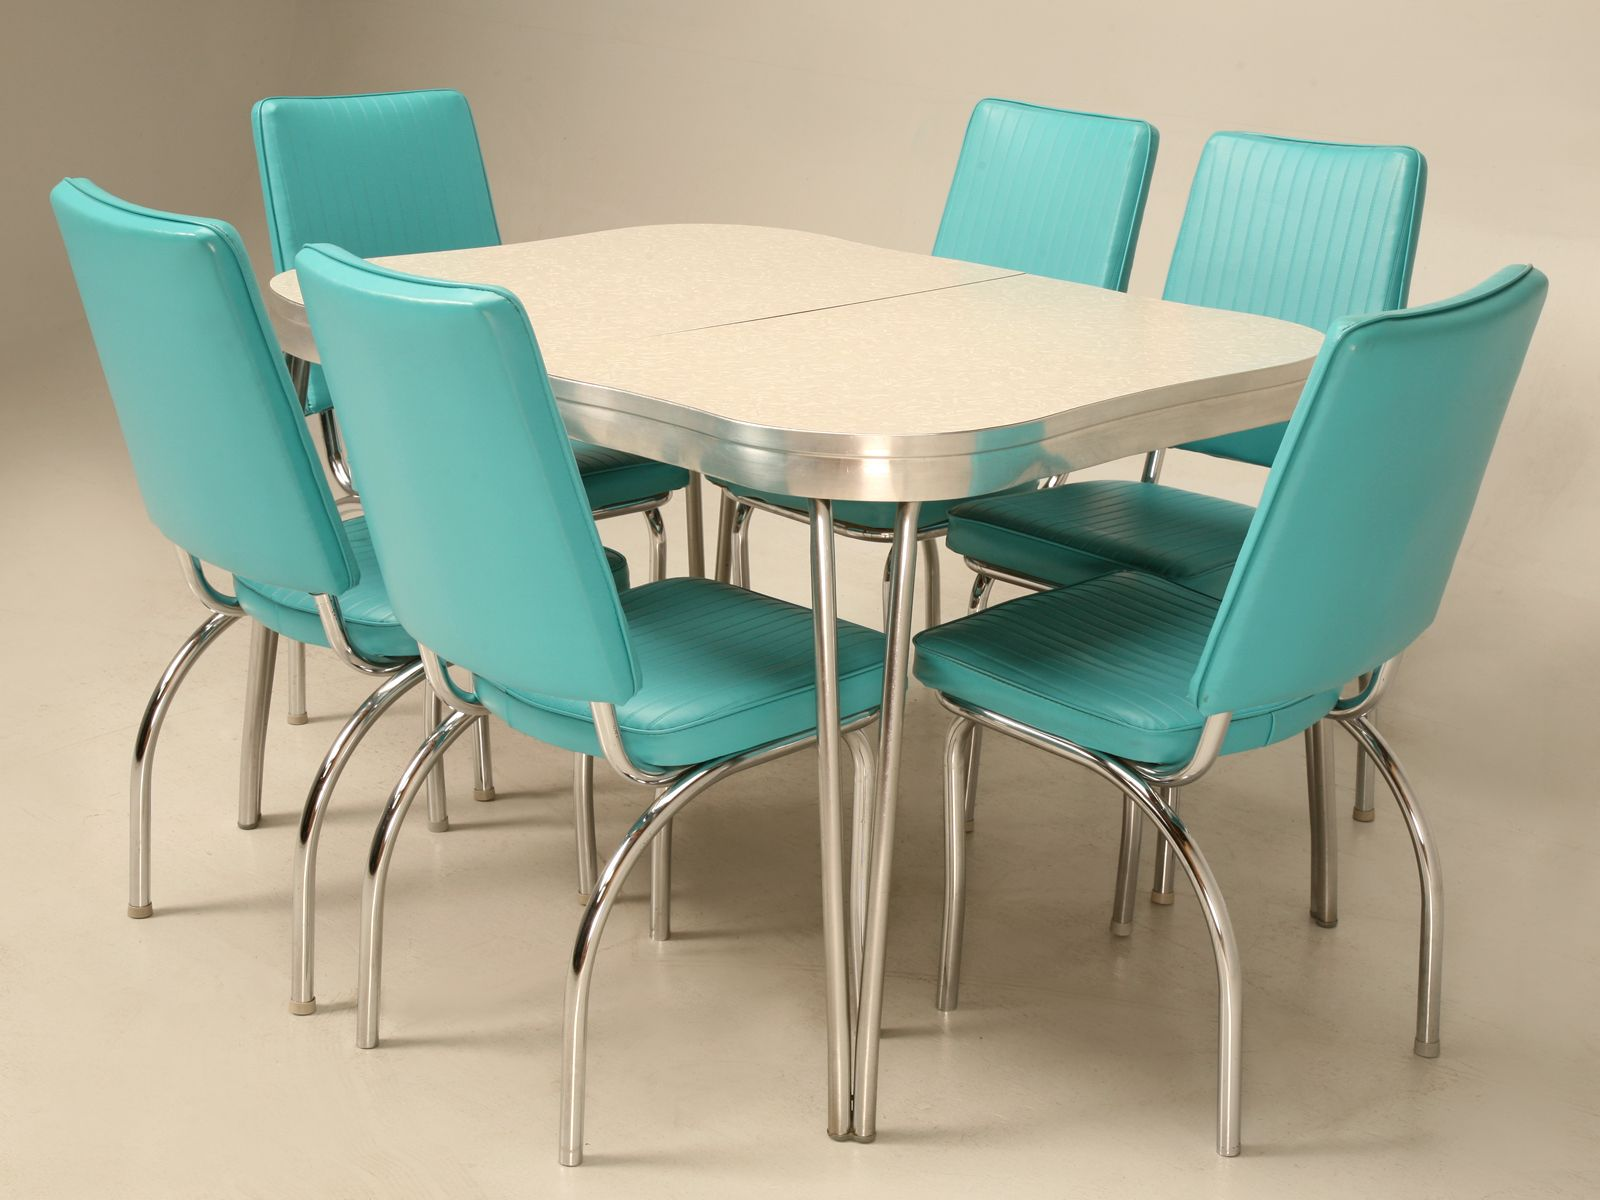 formica table chairs era 50 s retro kitchen table sets Vintage American Extending Dinette Set